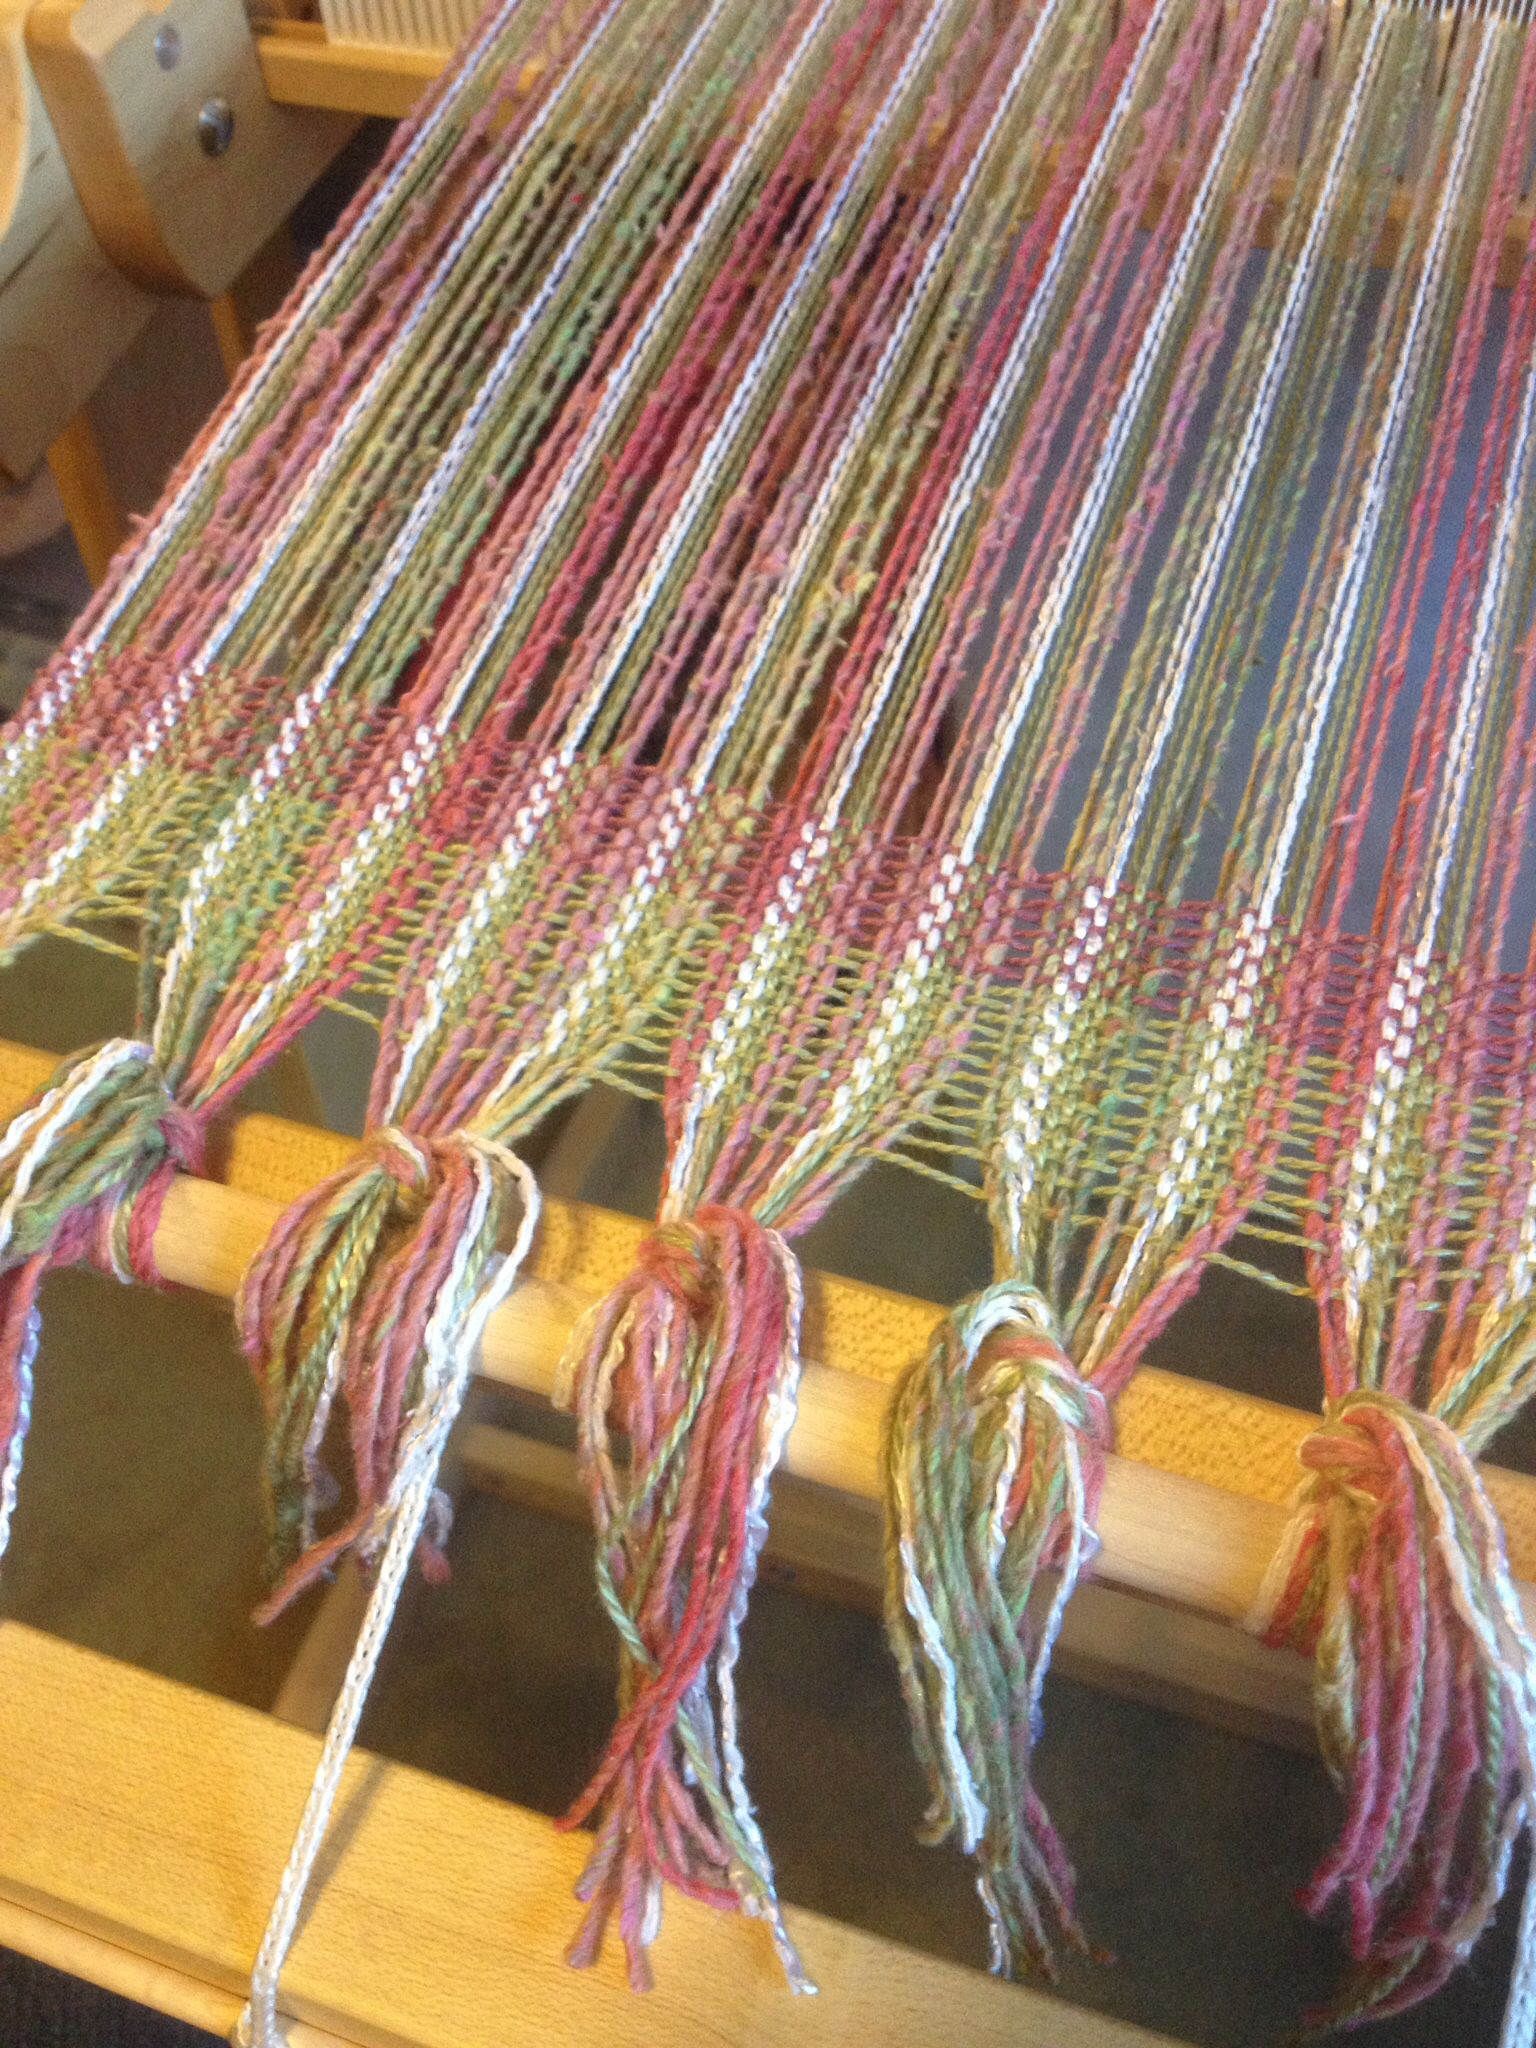 My Latest Warp Trying To Decide On The Weft Color Tapestry Weaving Loom Weaving Weaving